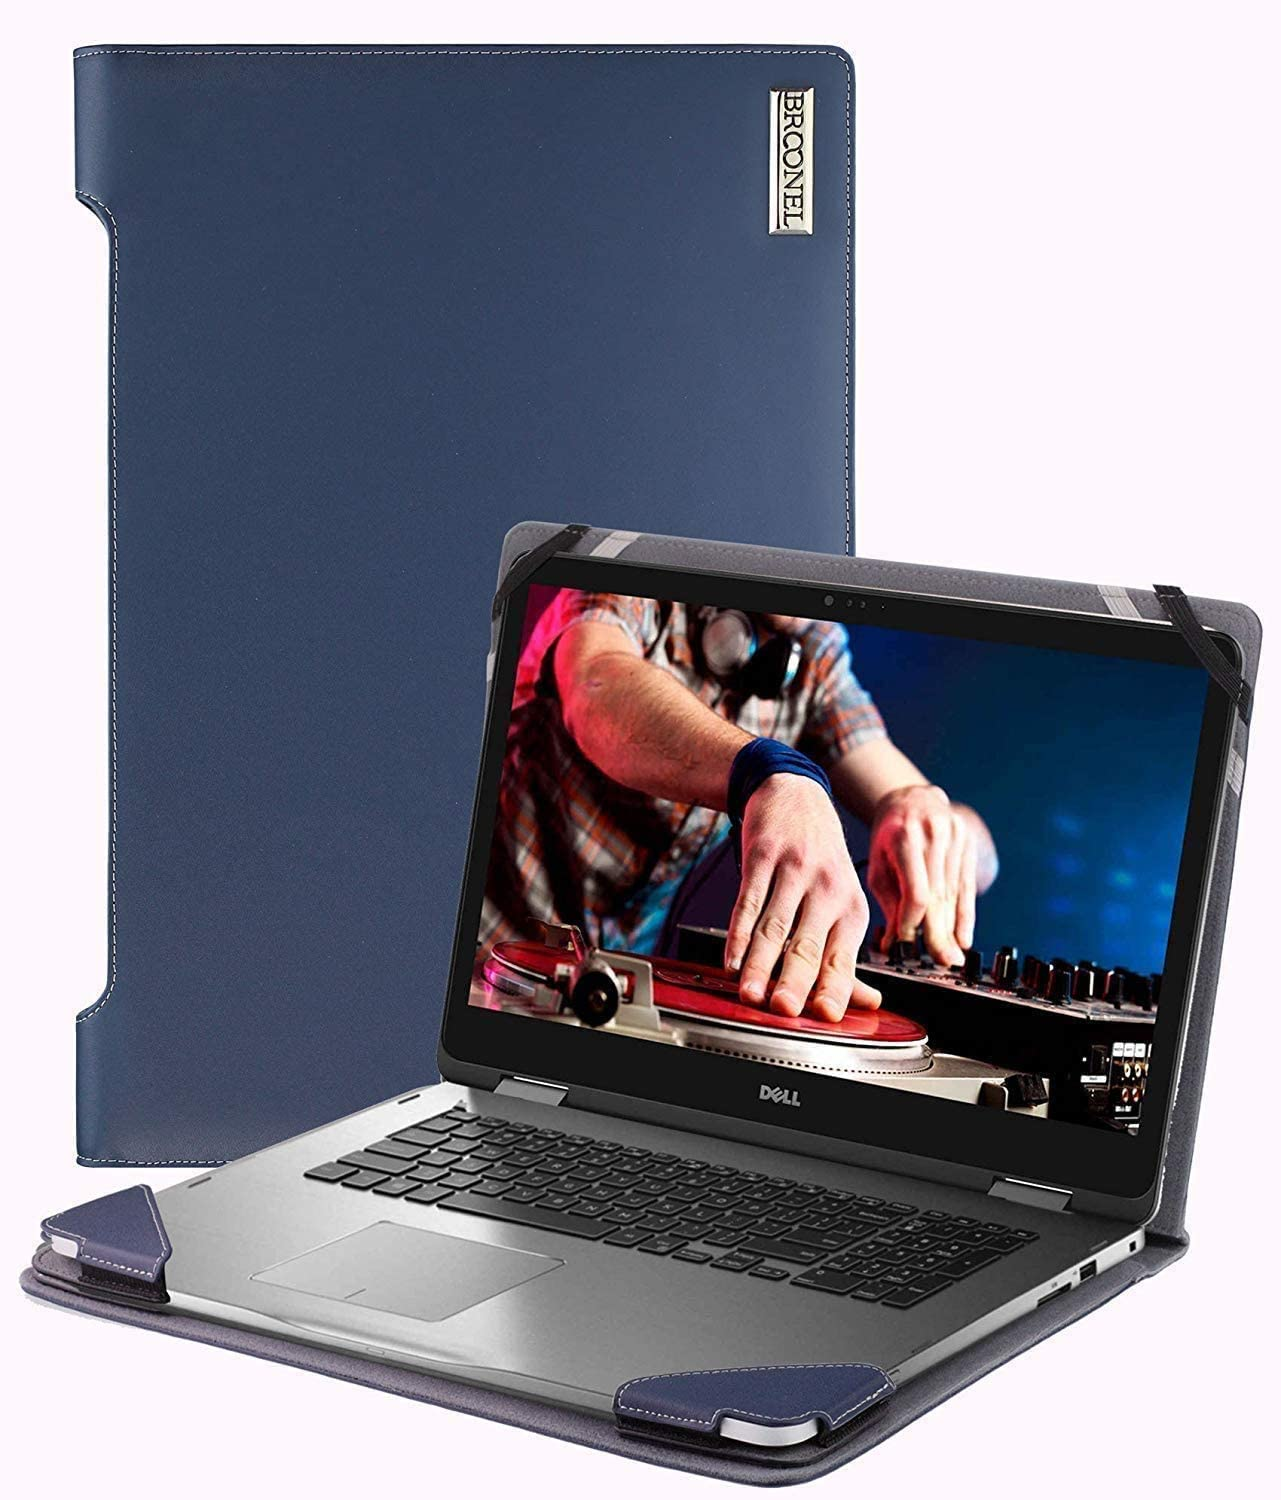 Broonel - Profile Series - Blue Leather Laptop Case - Compatible with The Lenovo Yoga S940 13.9 Inch